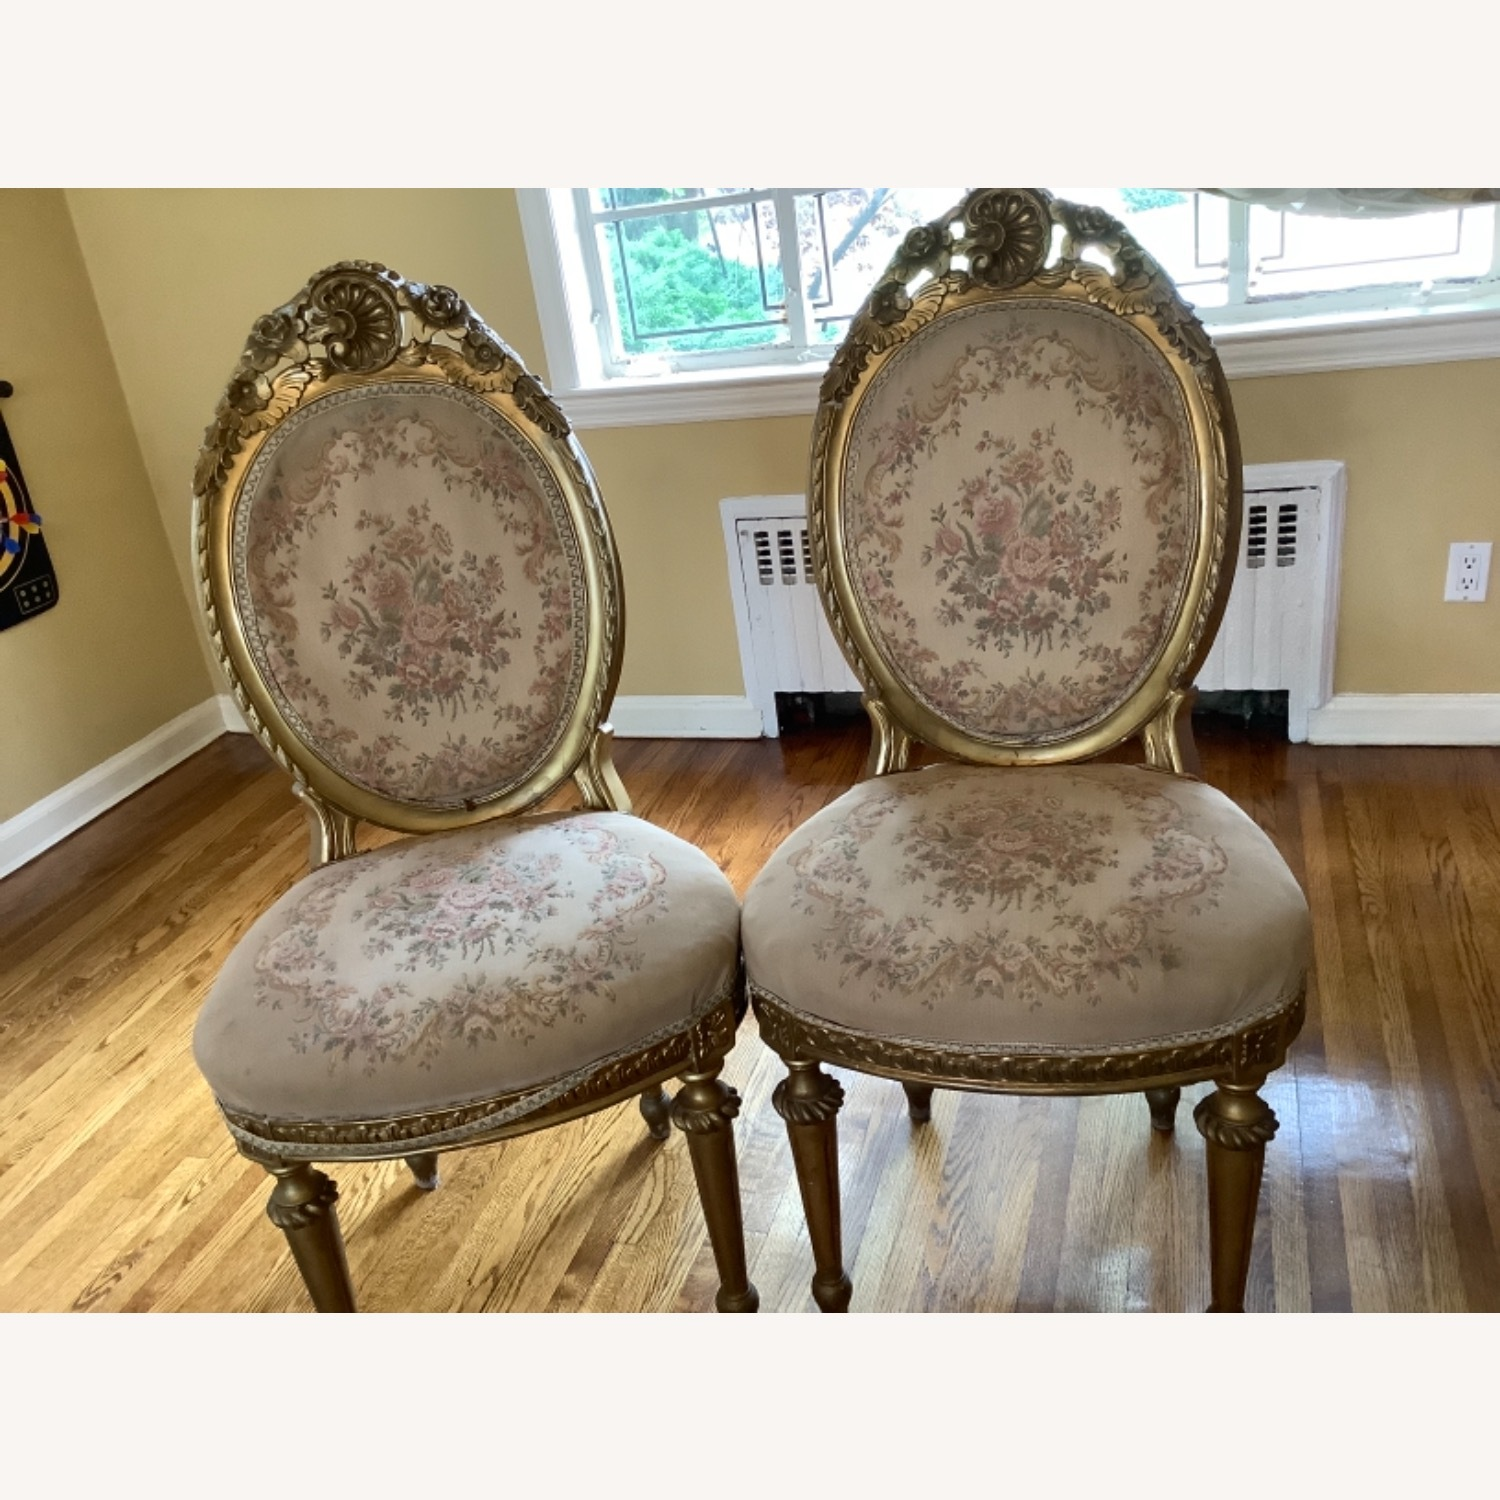 Antique Side Chairs - image-1